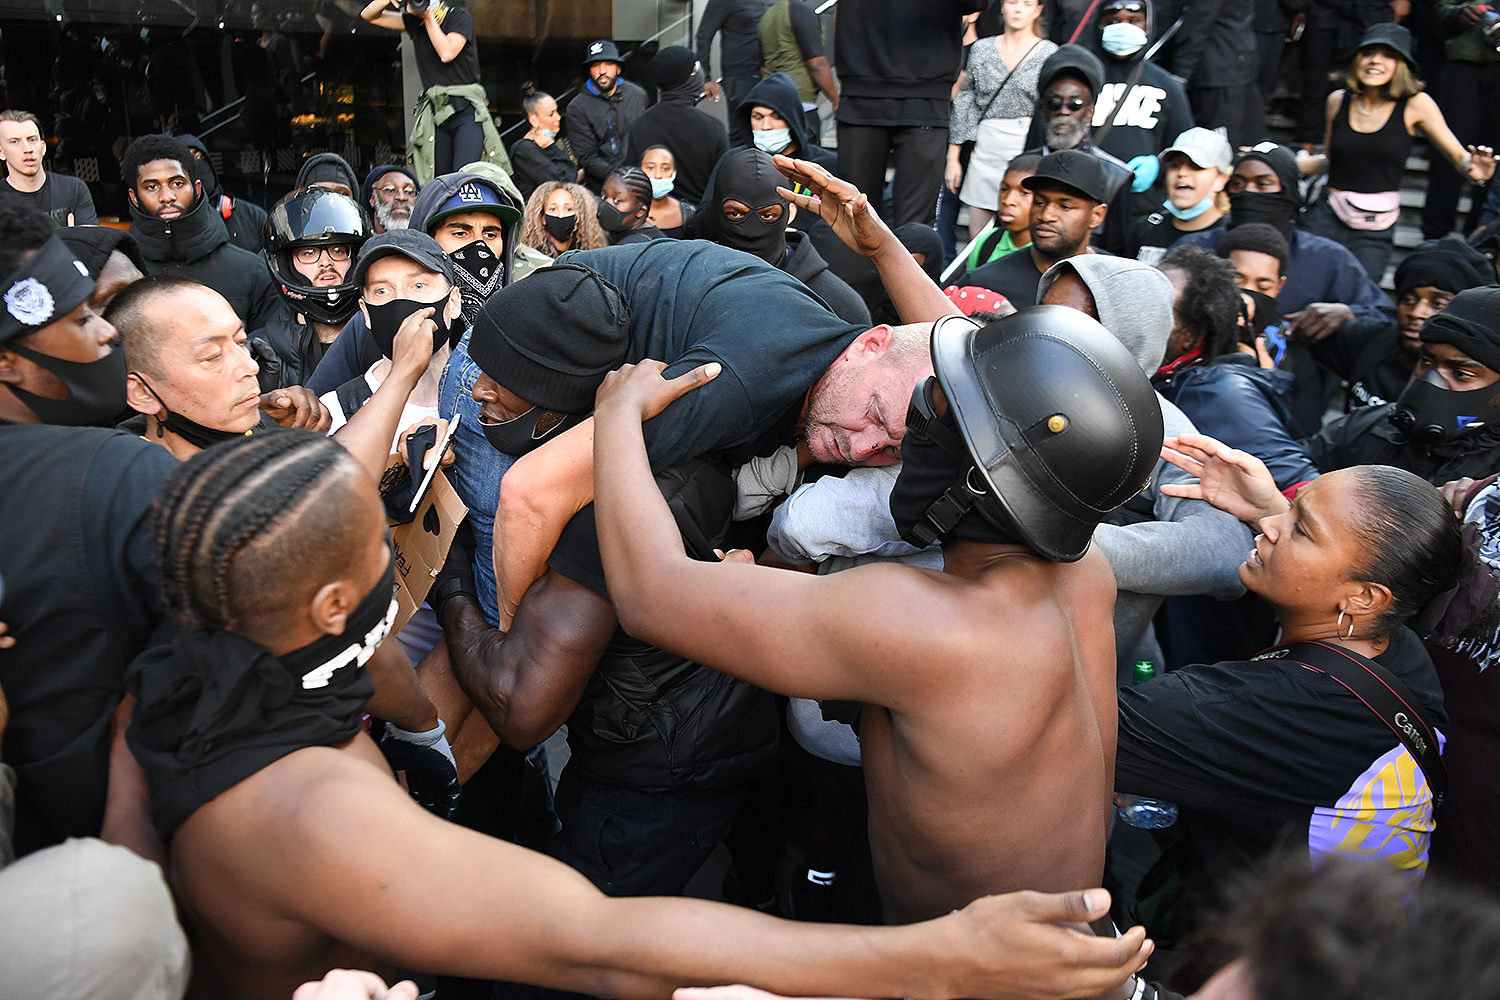 A man is carried to police lines after being beaten in clashes between protesters supporting the Black Lives Matter movement and far-right activists in London on June 13. DANIEL LEAL-OLIVAS/AFP via Getty Images